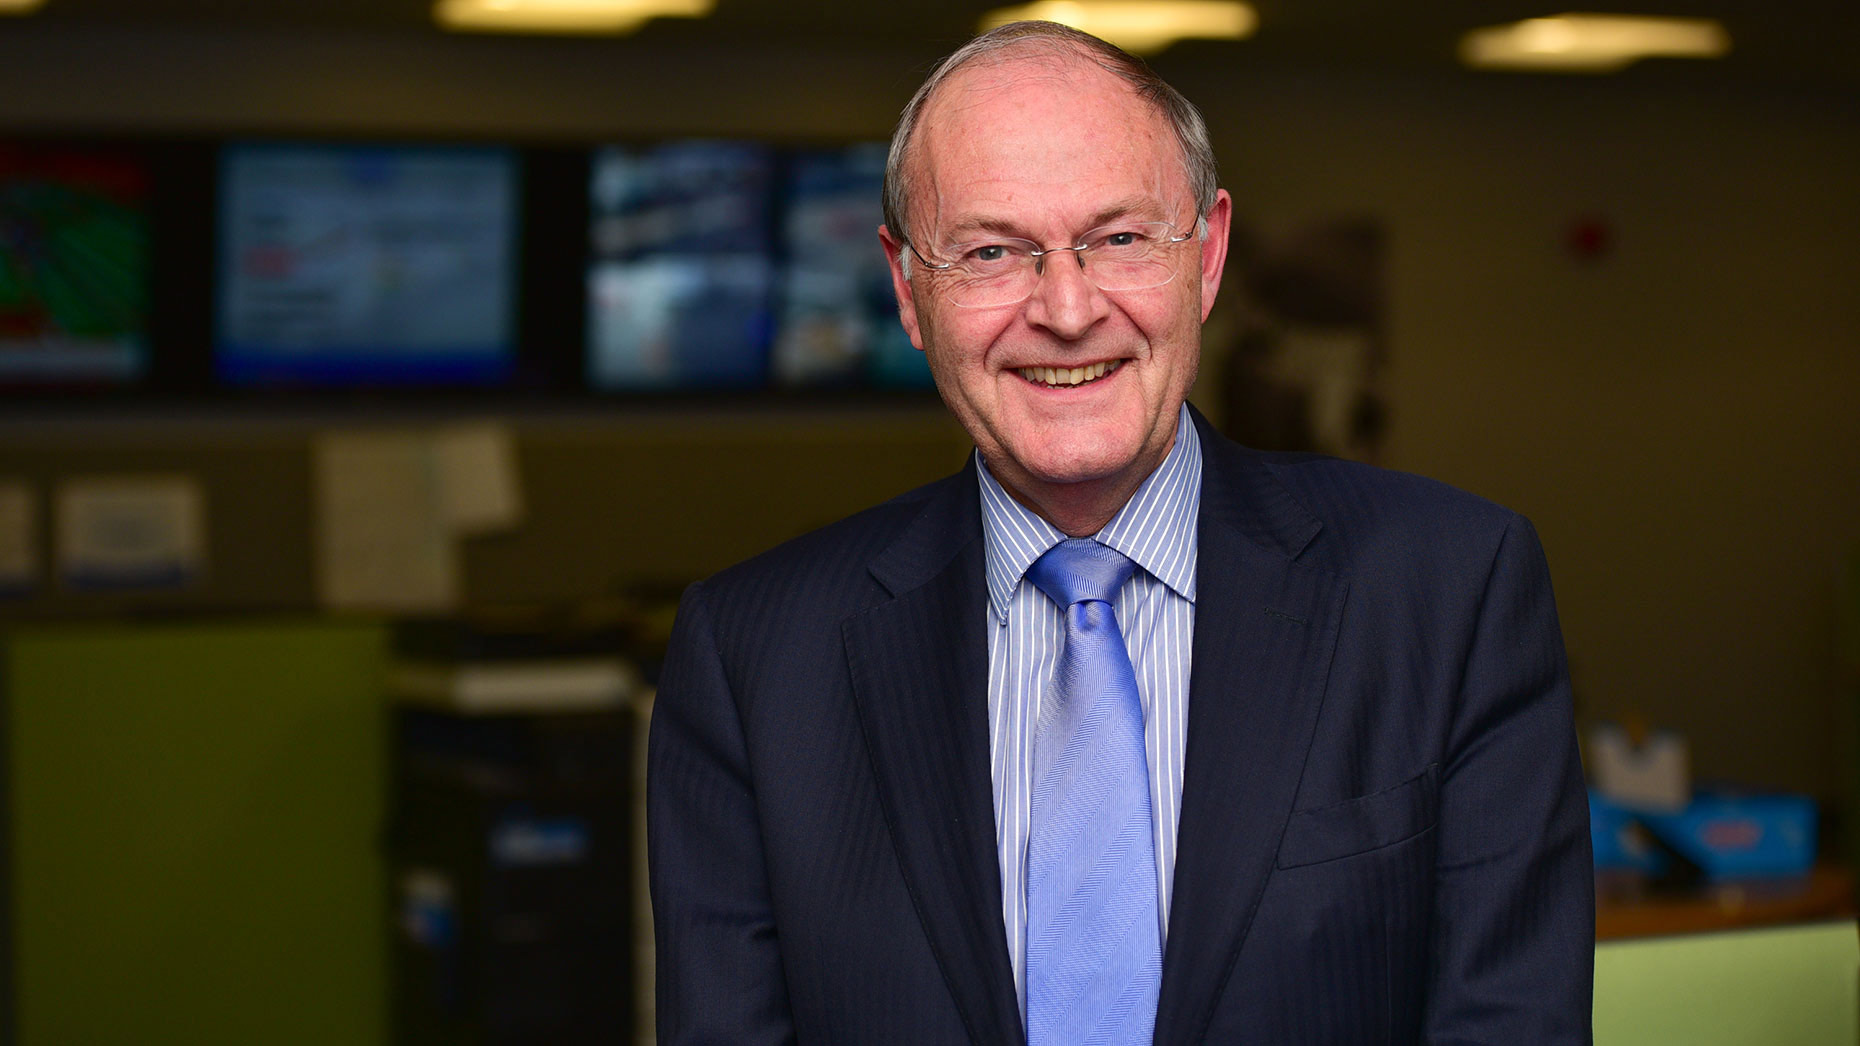 Police and Crime Commissioner Alan Hardwick. Photo Steve Smailes for The Lincolnite